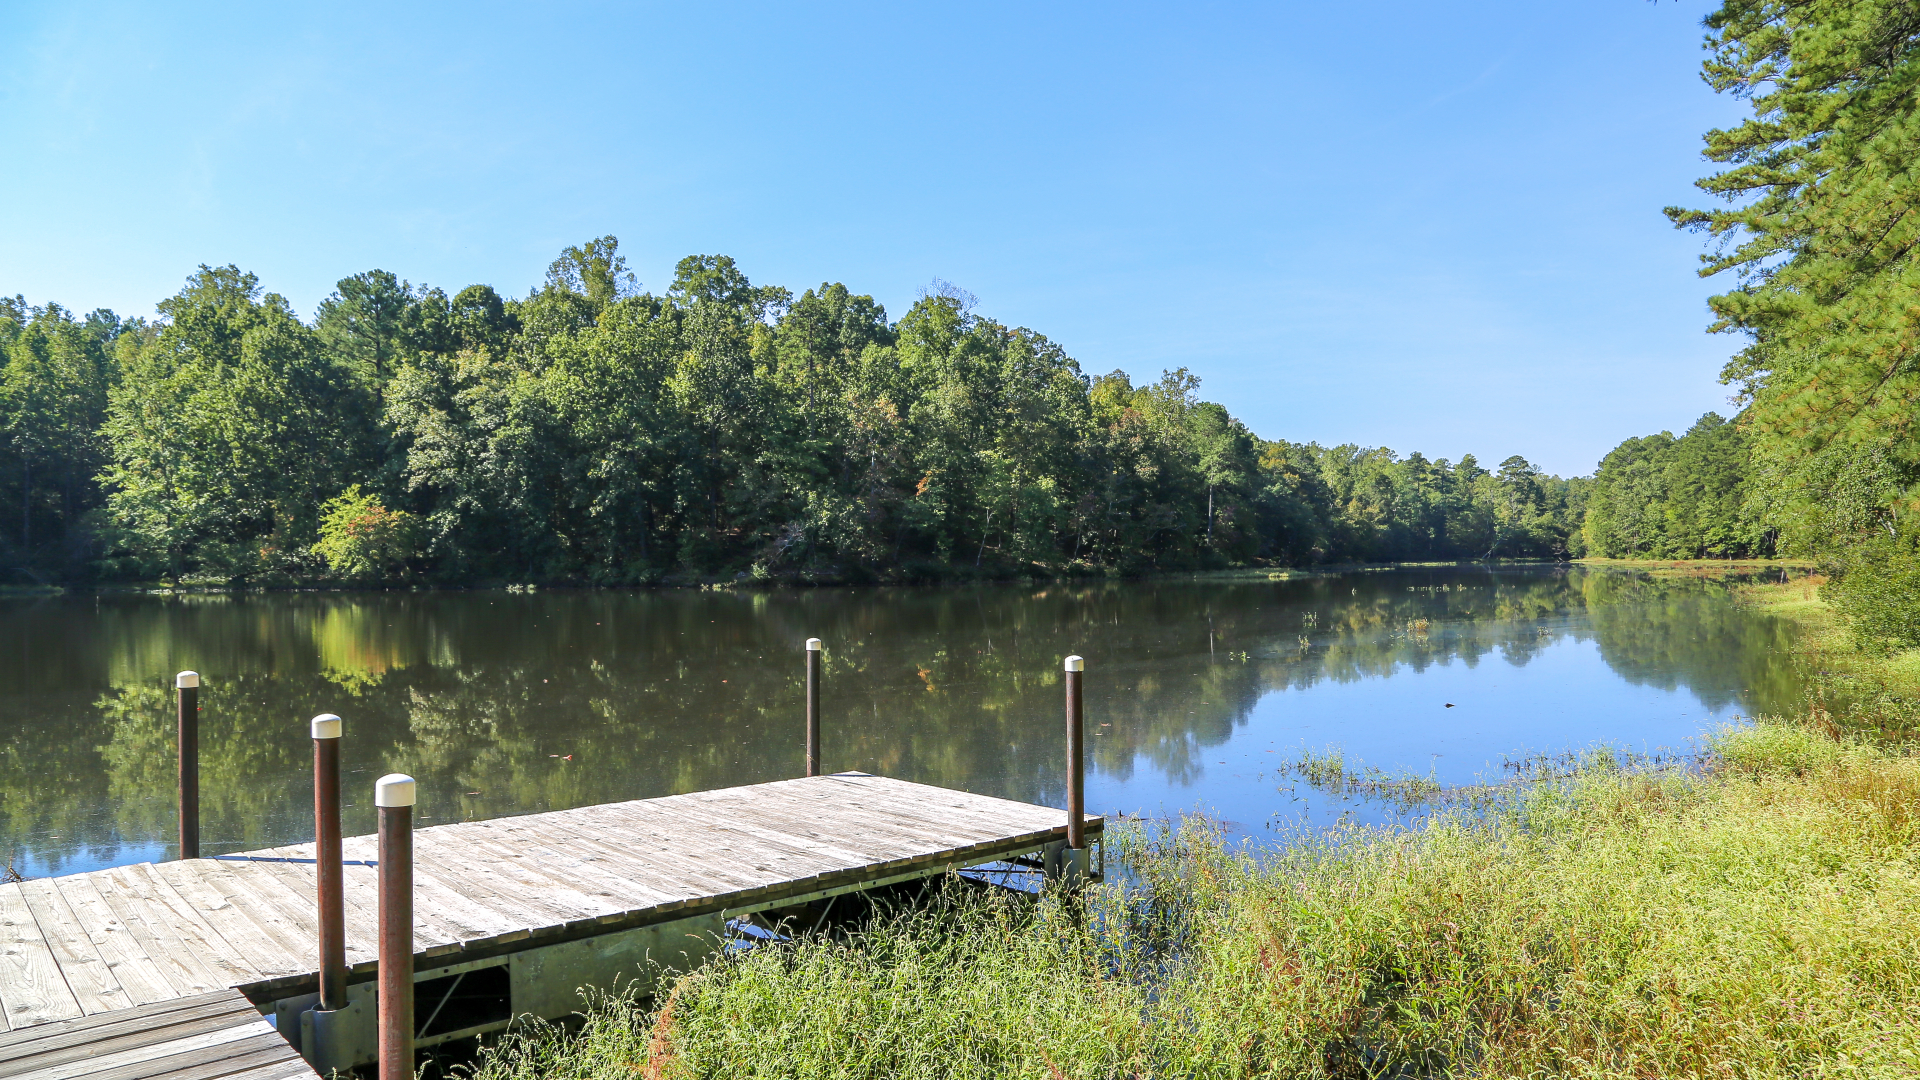 View of the lake and dock at Durant Nature Preserve